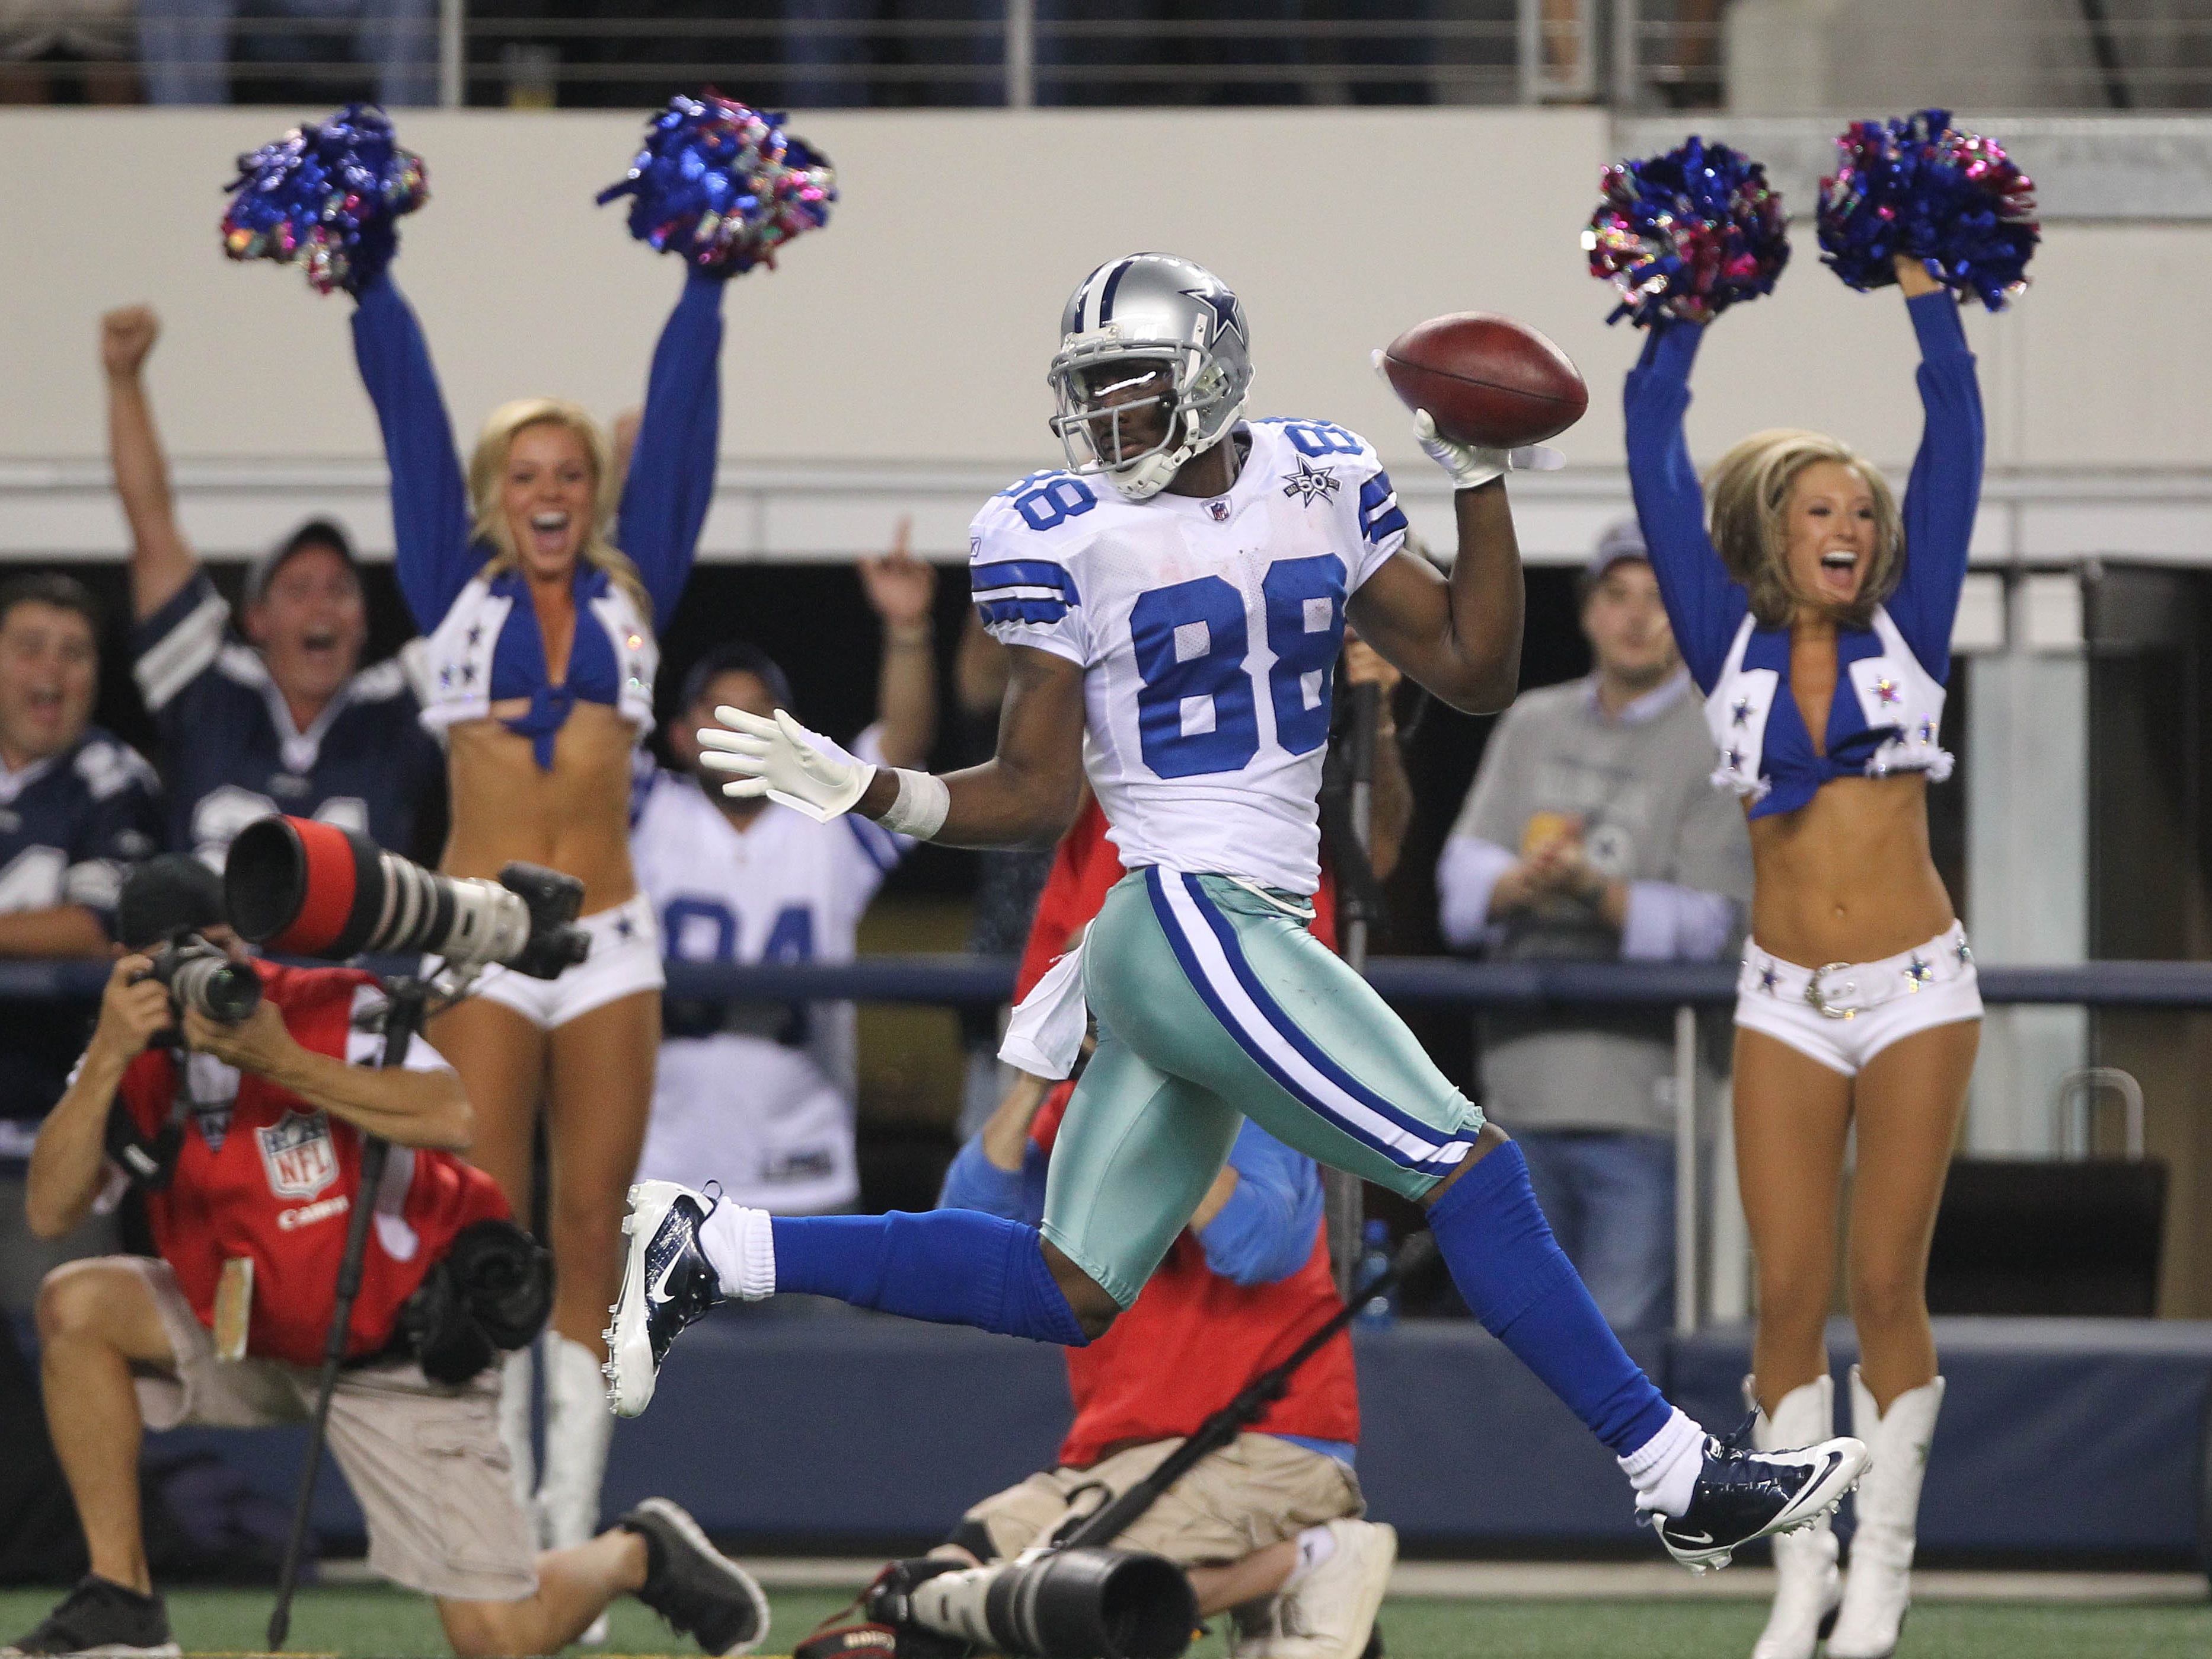 Dez Bryant returns a punt for an 88-yard touchdown against the New York Giants at Cowboys Stadium in 2010.